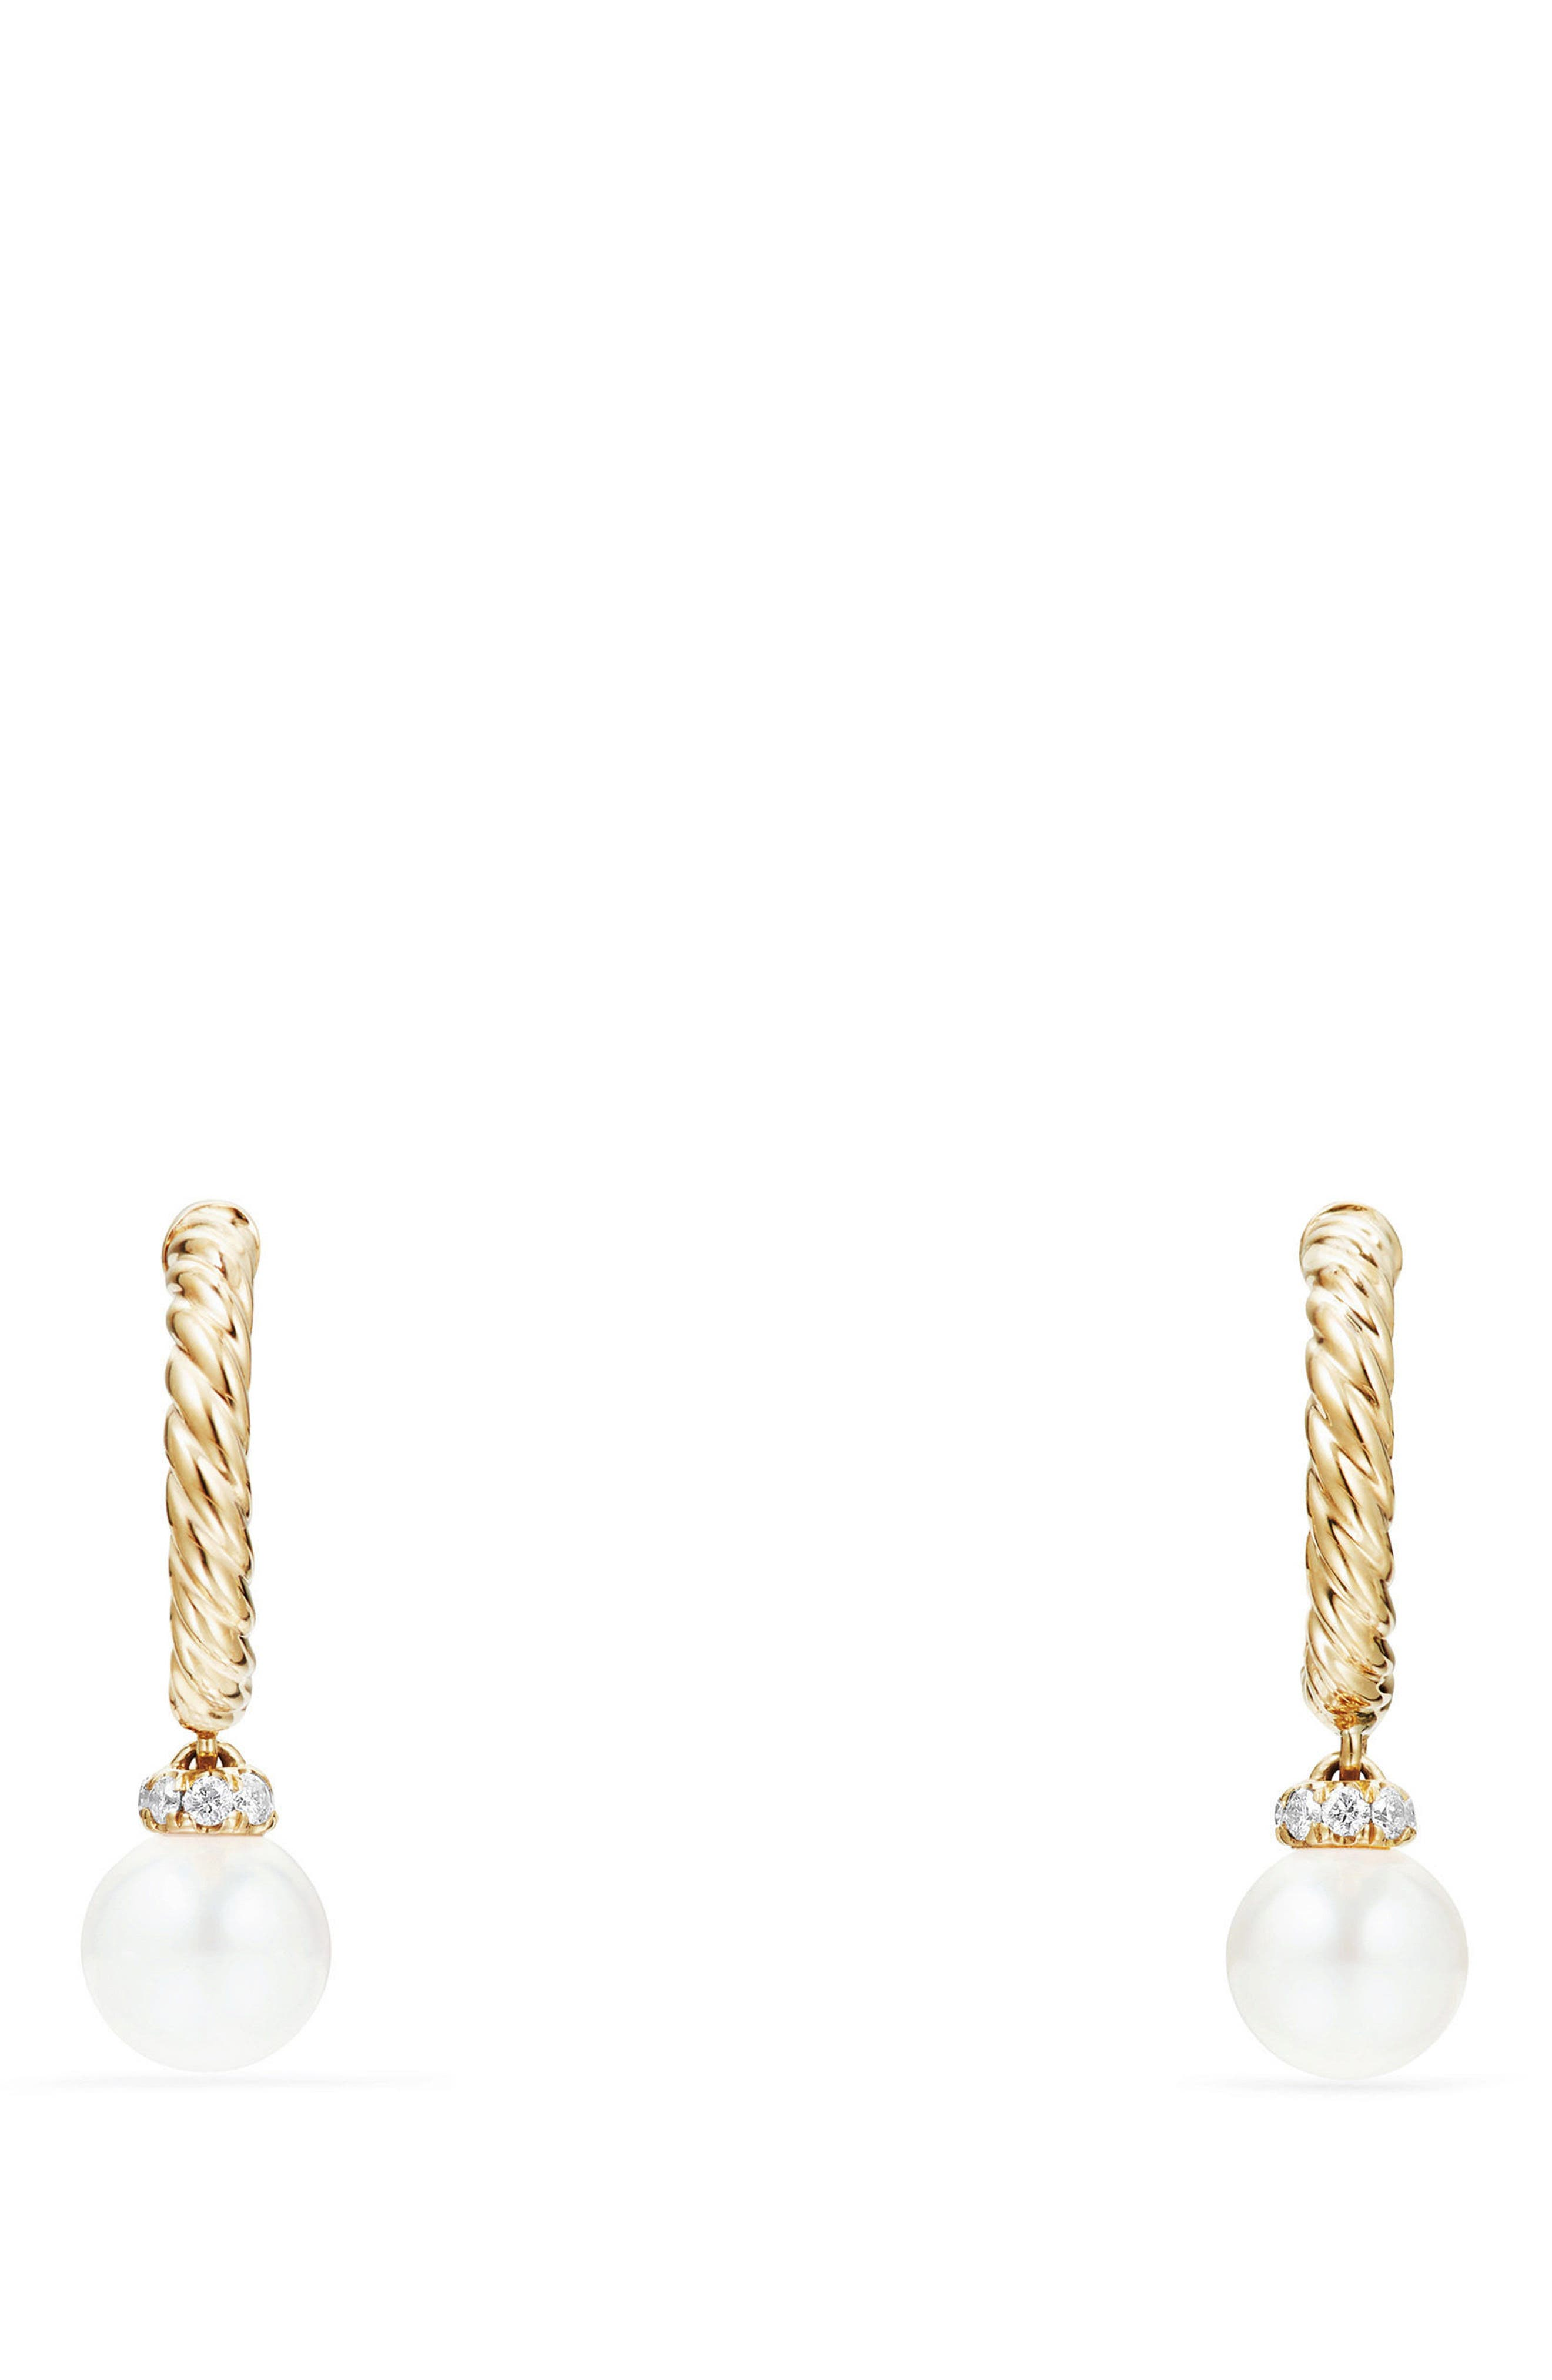 Solari Hoop Earrings with Diamonds & Pearls in 18K Gold,                             Alternate thumbnail 2, color,                             Yellow Gold/ Diamond/ Pearl